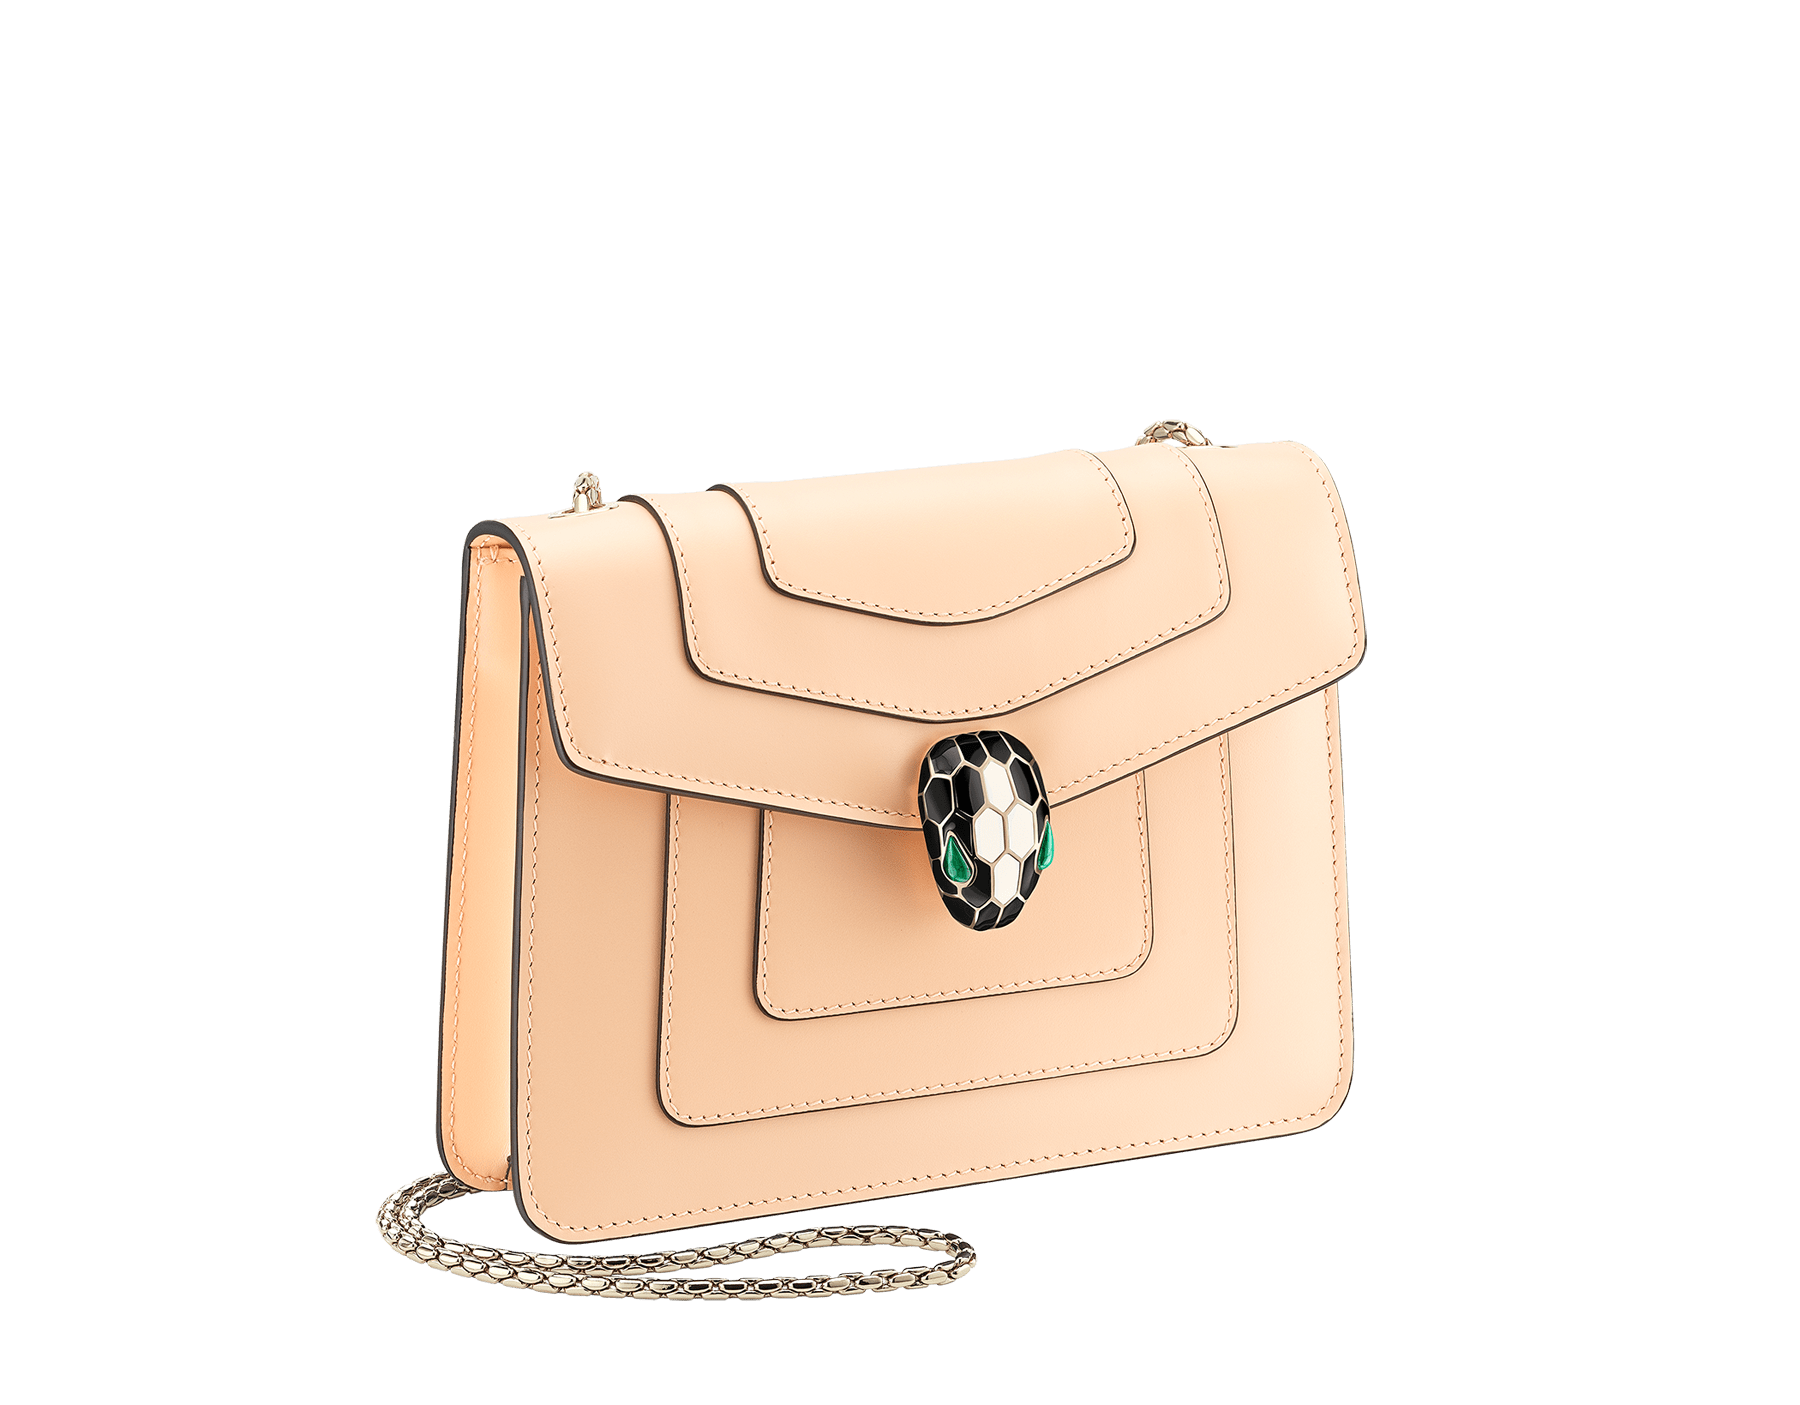 """Serpenti Forever"" crossbody bag in peach calf leather with Pink Spinel fuchsia gros grain internal lining. Iconic snakehead closure in light gold plated brass enriched with black and white agate enamel and green malachite eyes. 422-CLc image 2"